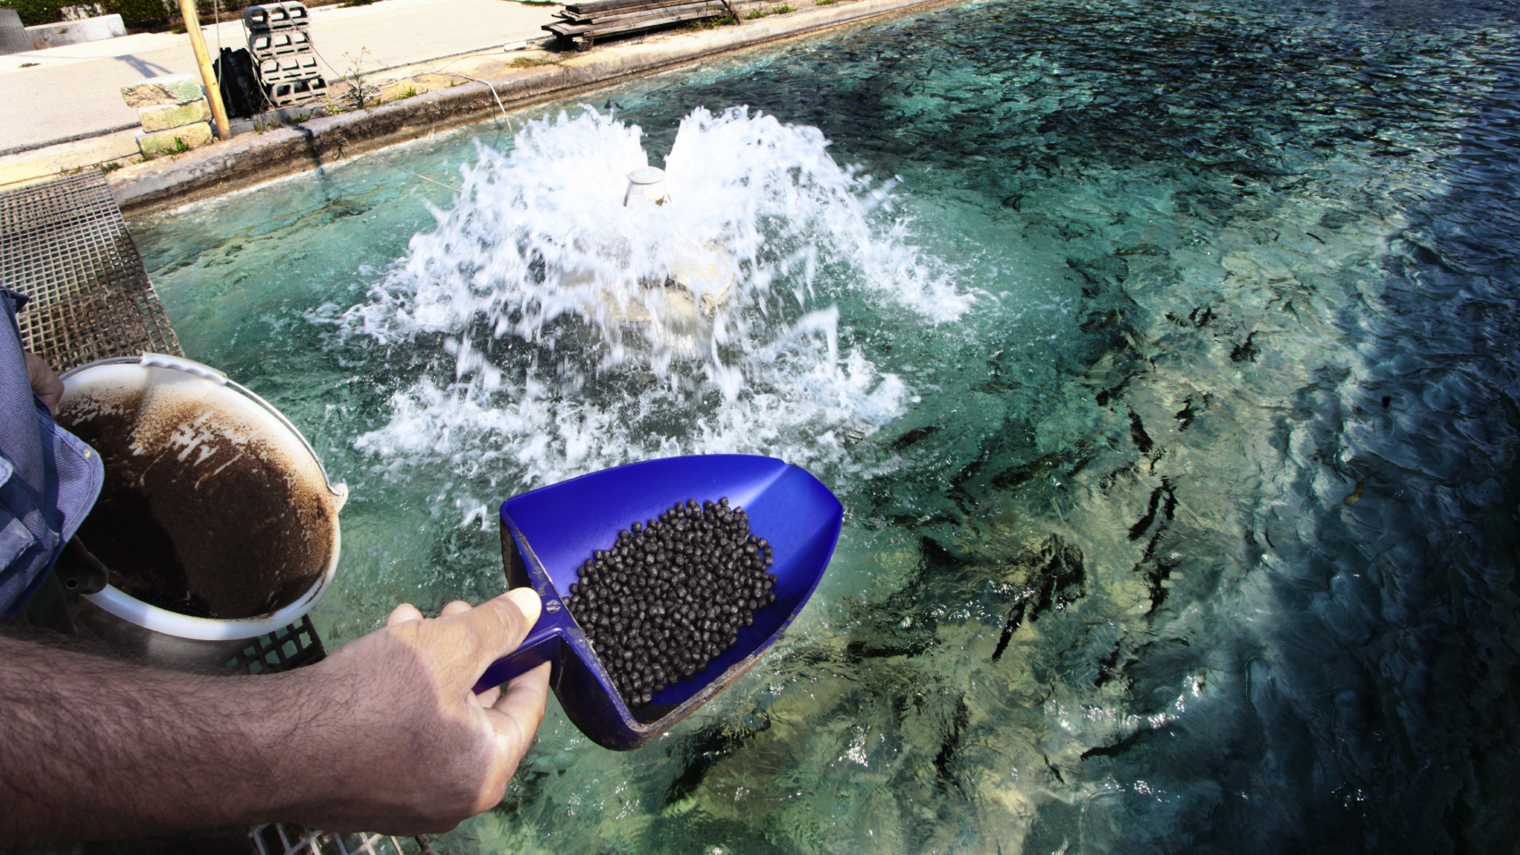 Fish being fed